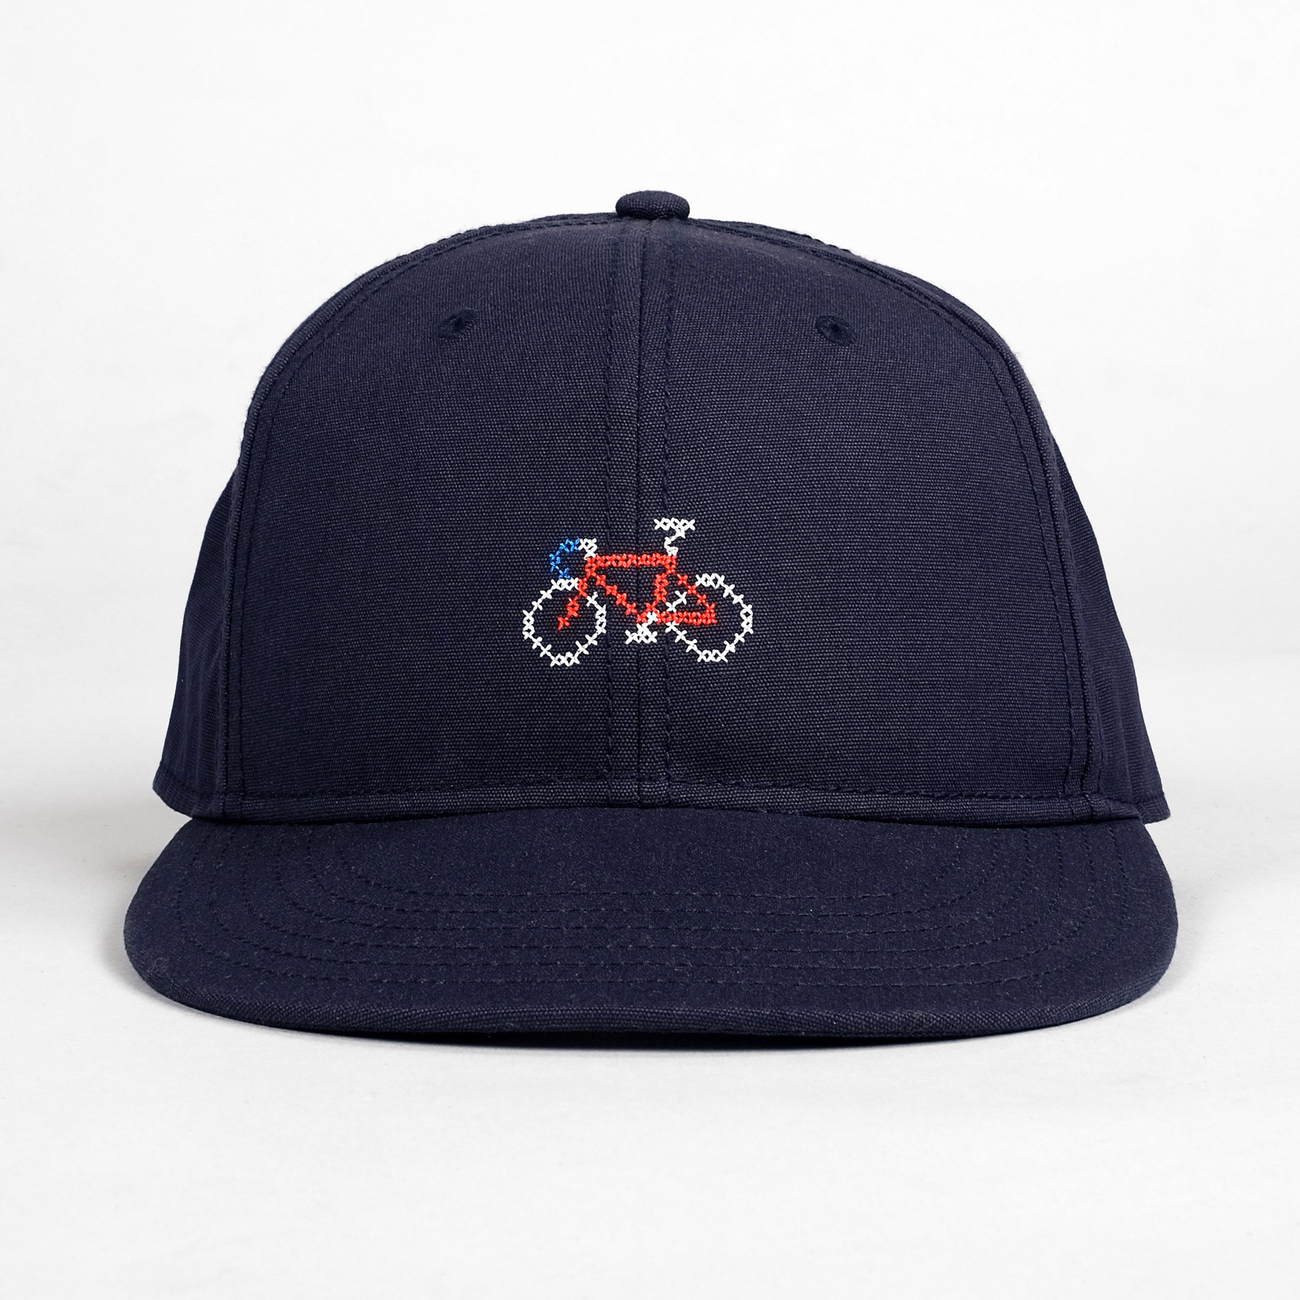 Snapback Cap Stitch Bike Navy